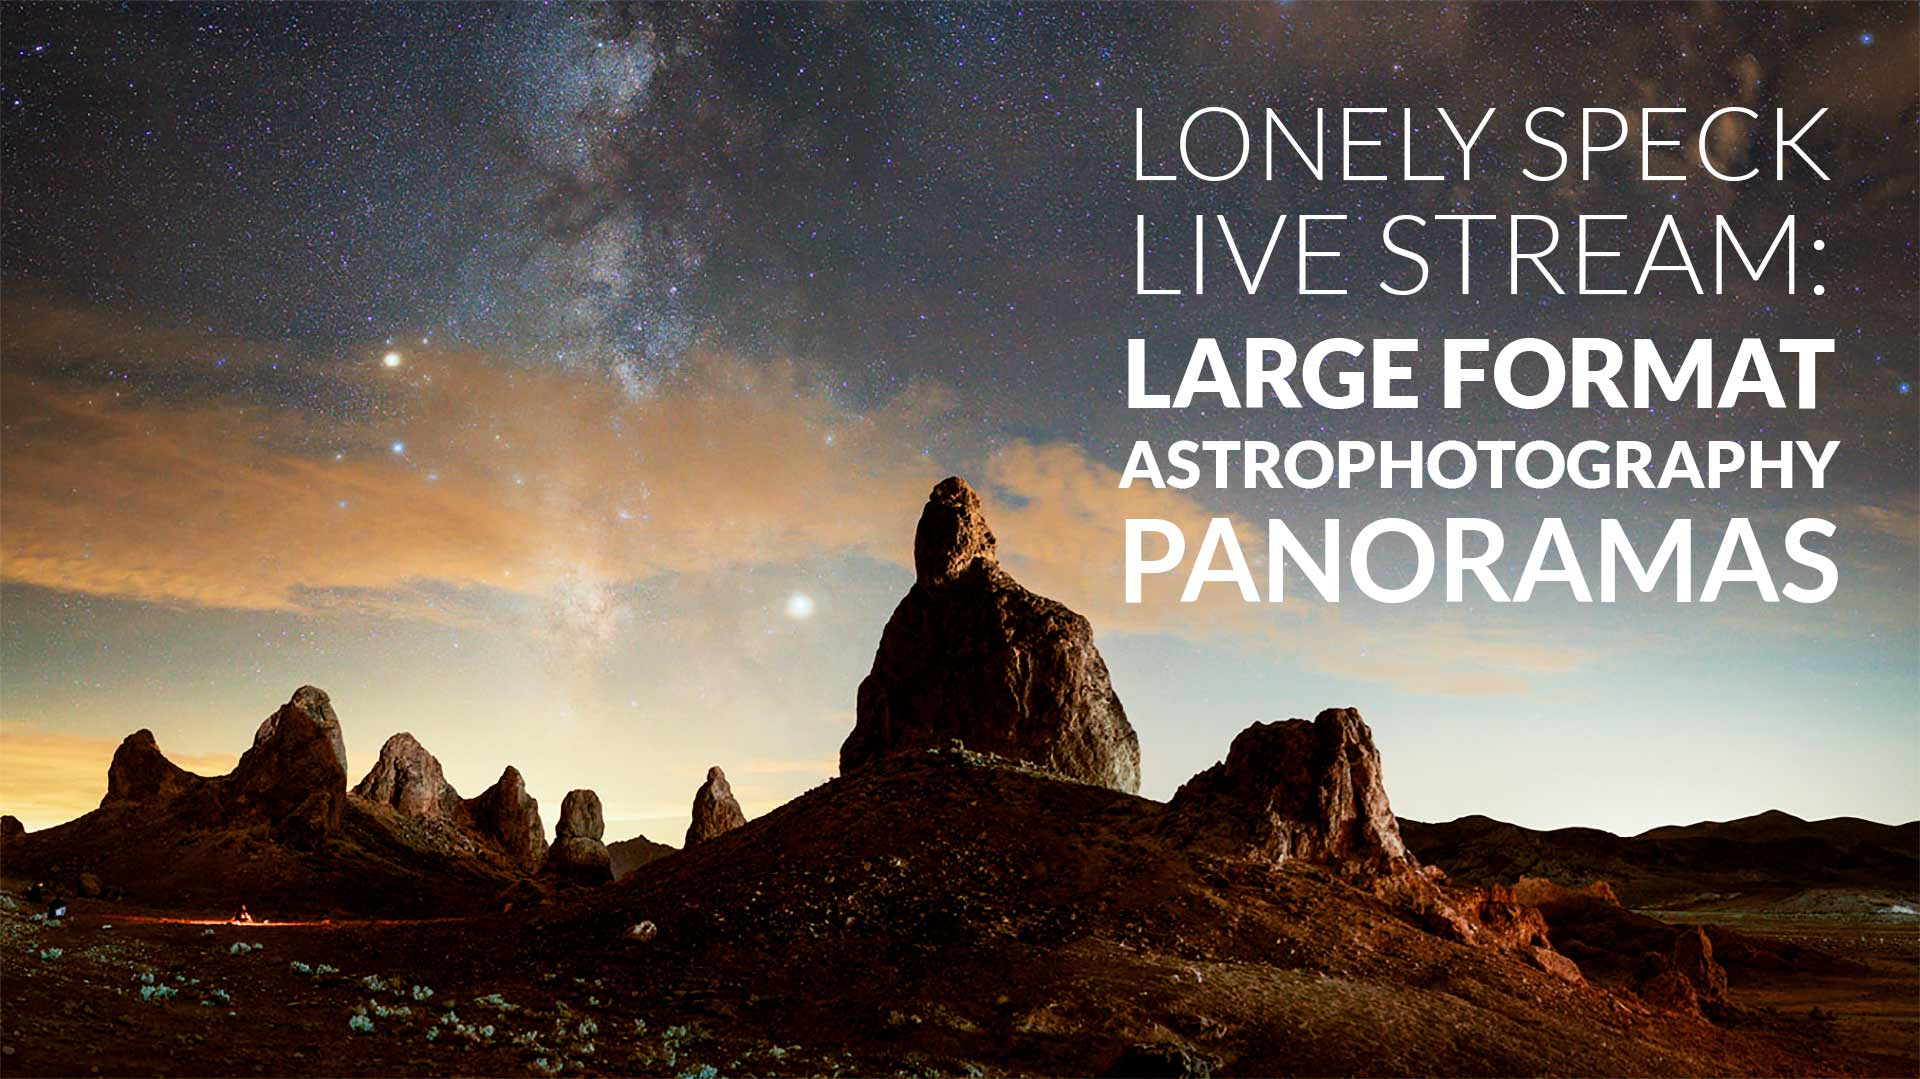 Lonely Speck Live Stream Large Format Astrophotography Panoramas